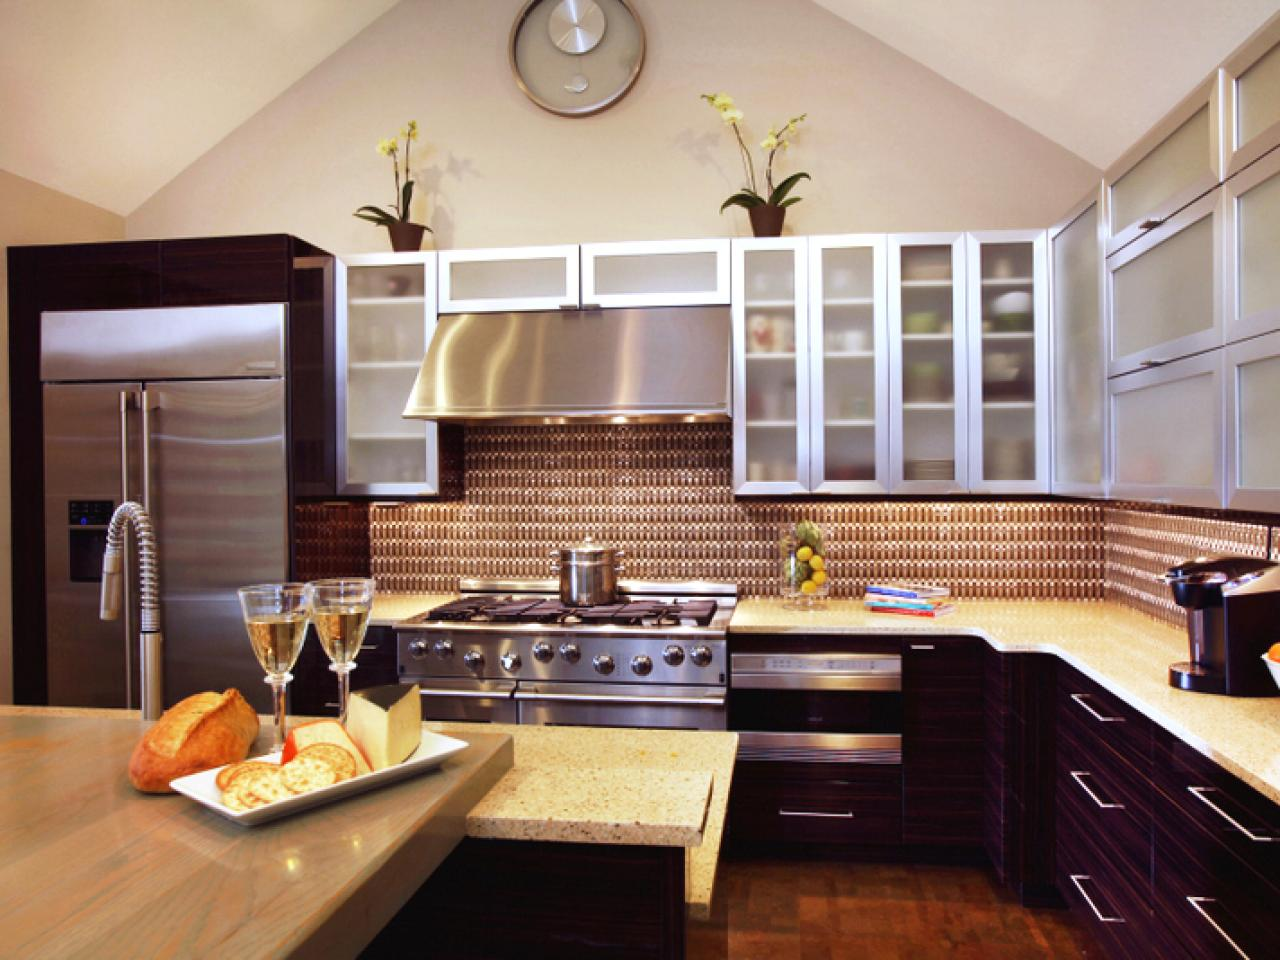 L shaped kitchen design pictures ideas tips from hgtv for Kitchen cabinets ideas images